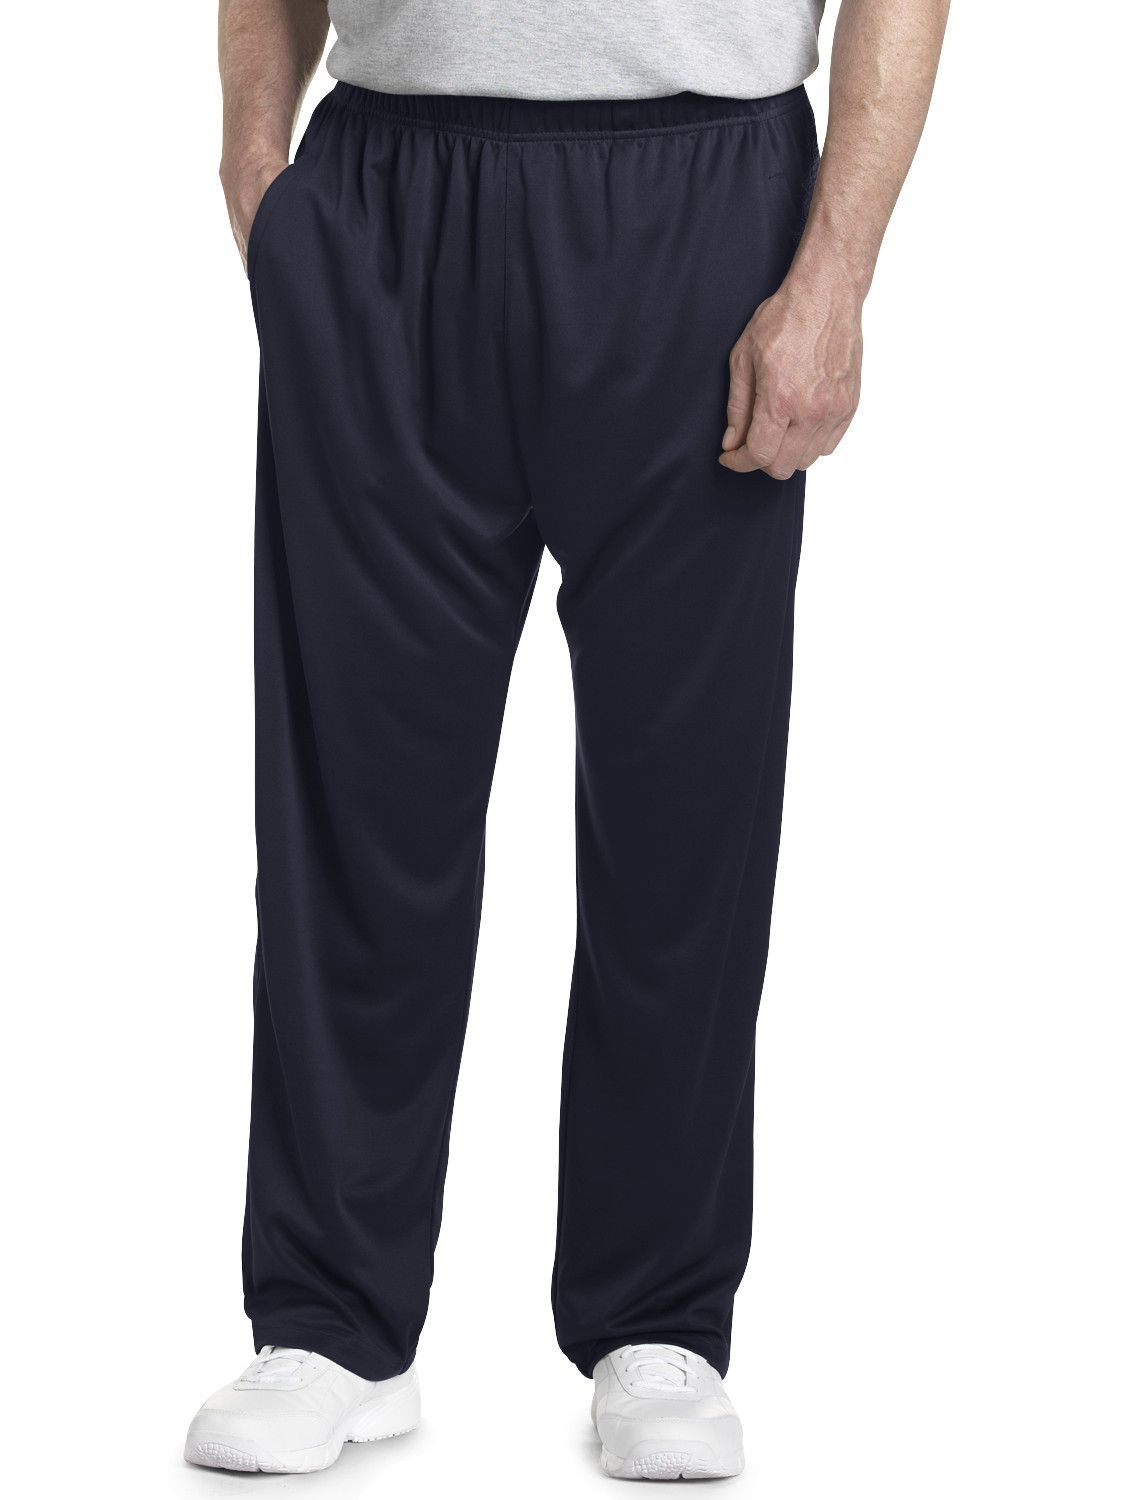 Big and Tall XL clothes for Men at Macy's come in all styles & sizes. Shop Big and Tall XL men's clothing at Macy's today. Free Shipping available.